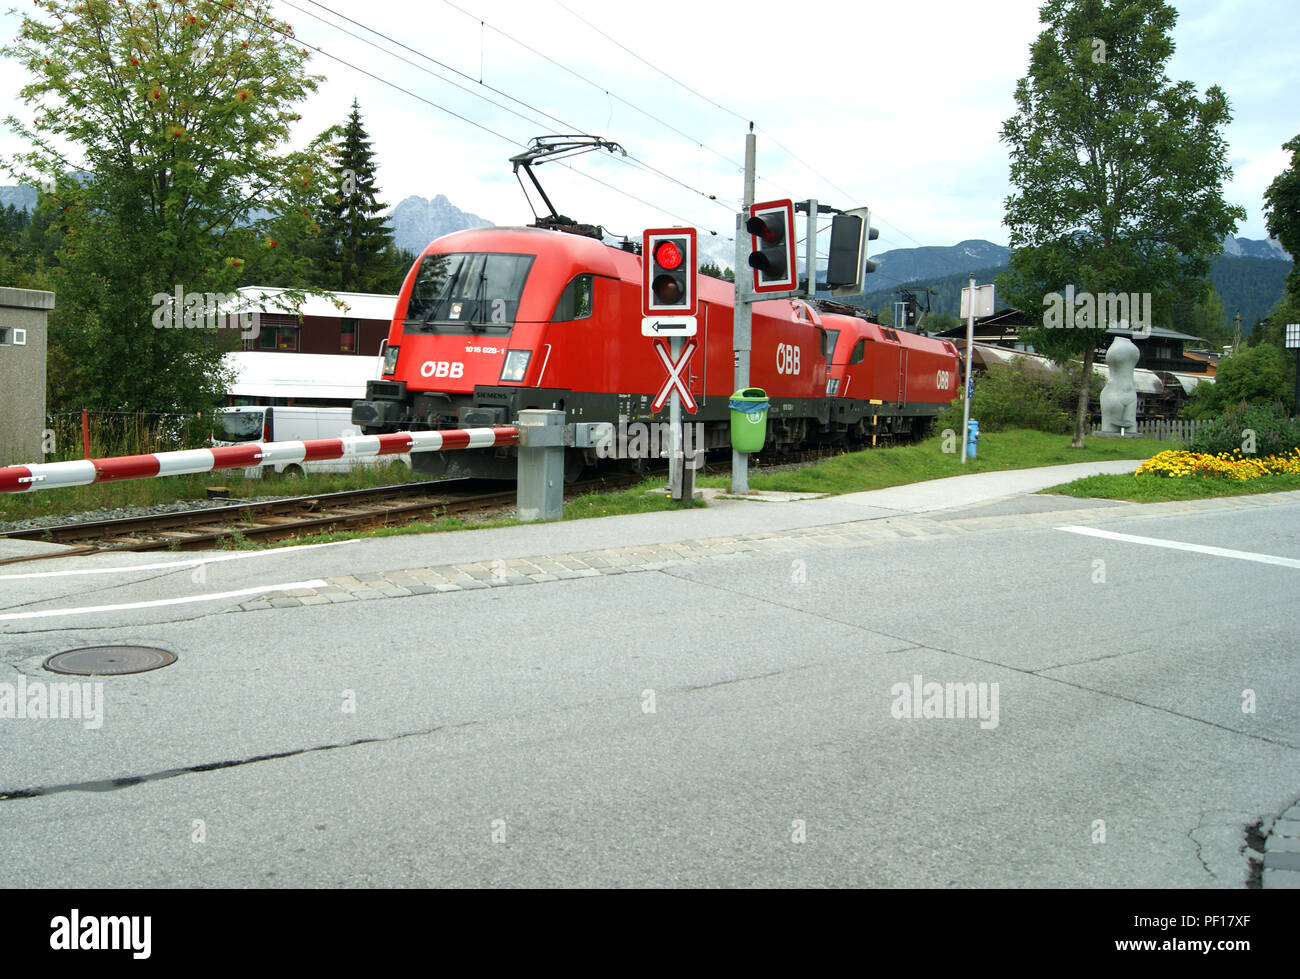 OBB 1016-028-1 locomotive leads another of her class across a level crossing at Seefeld with a freight trailn - Stock Image